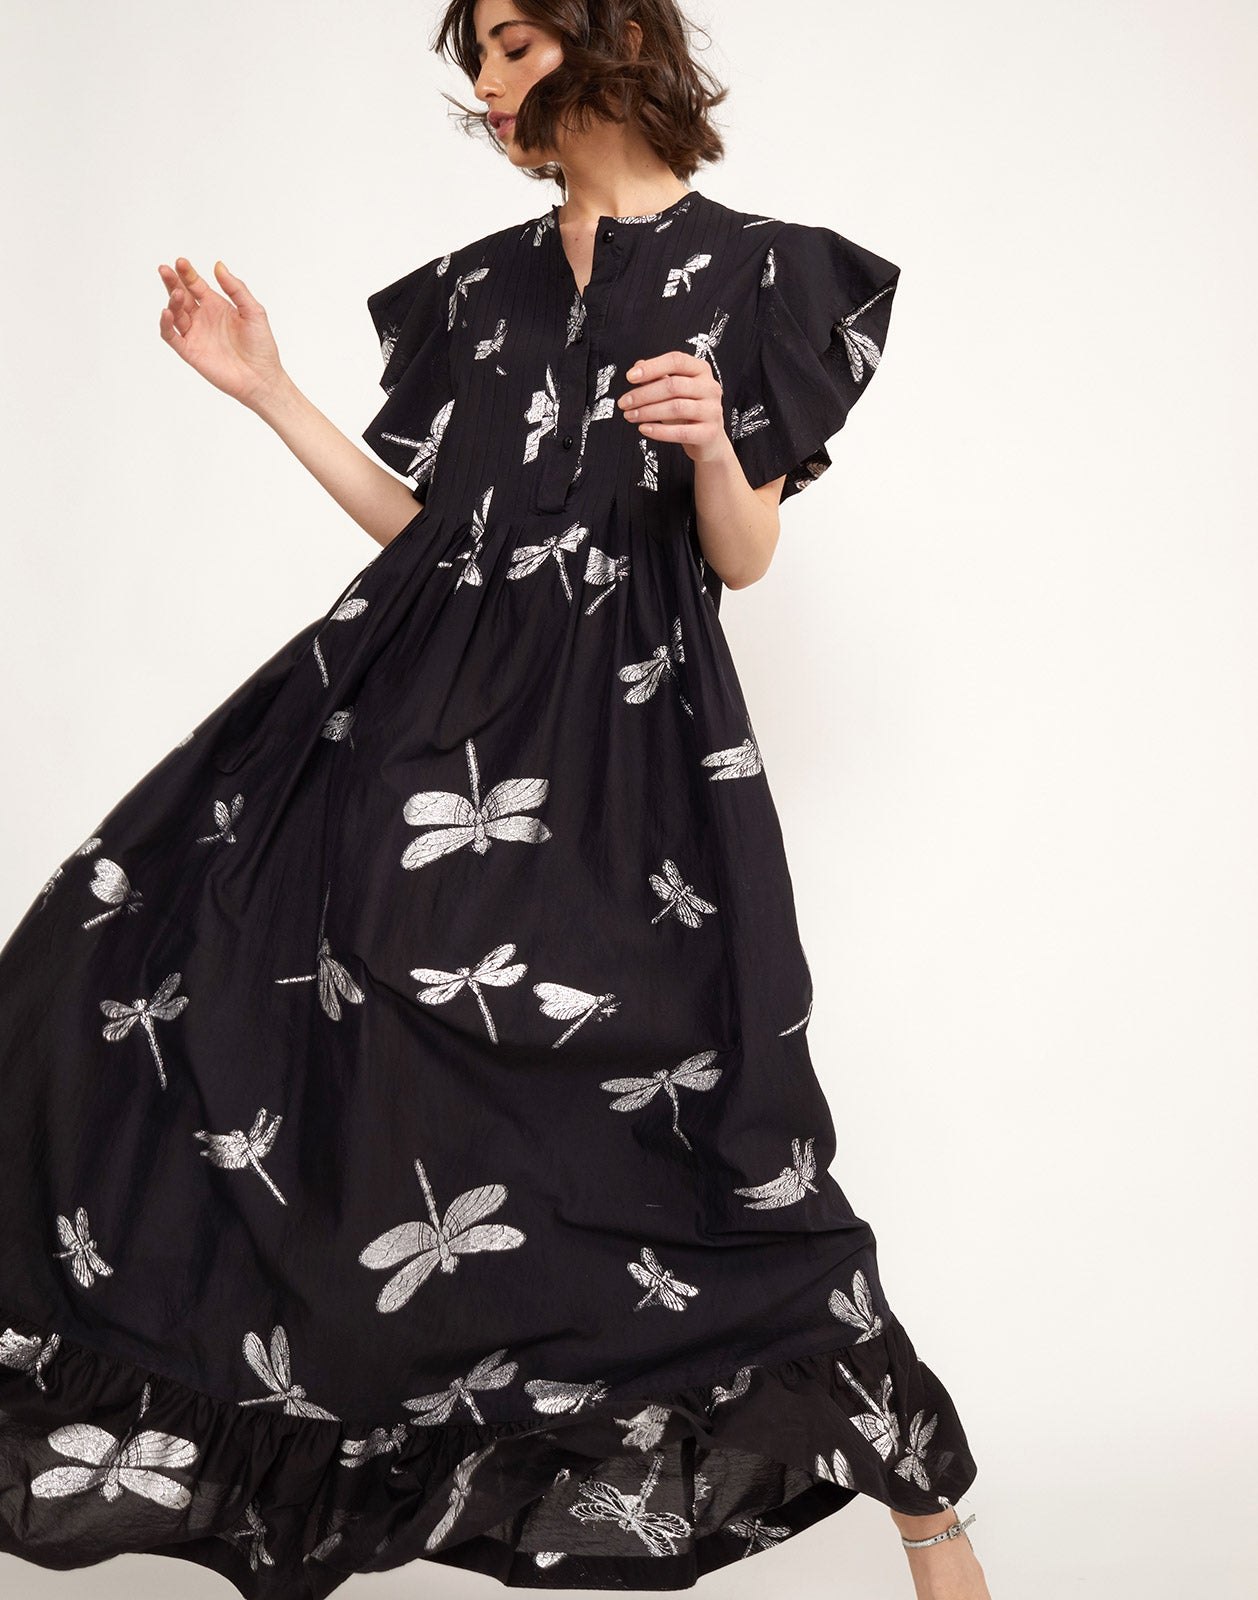 Additional view of the Nairobi Dragonfly Kaftan Dress